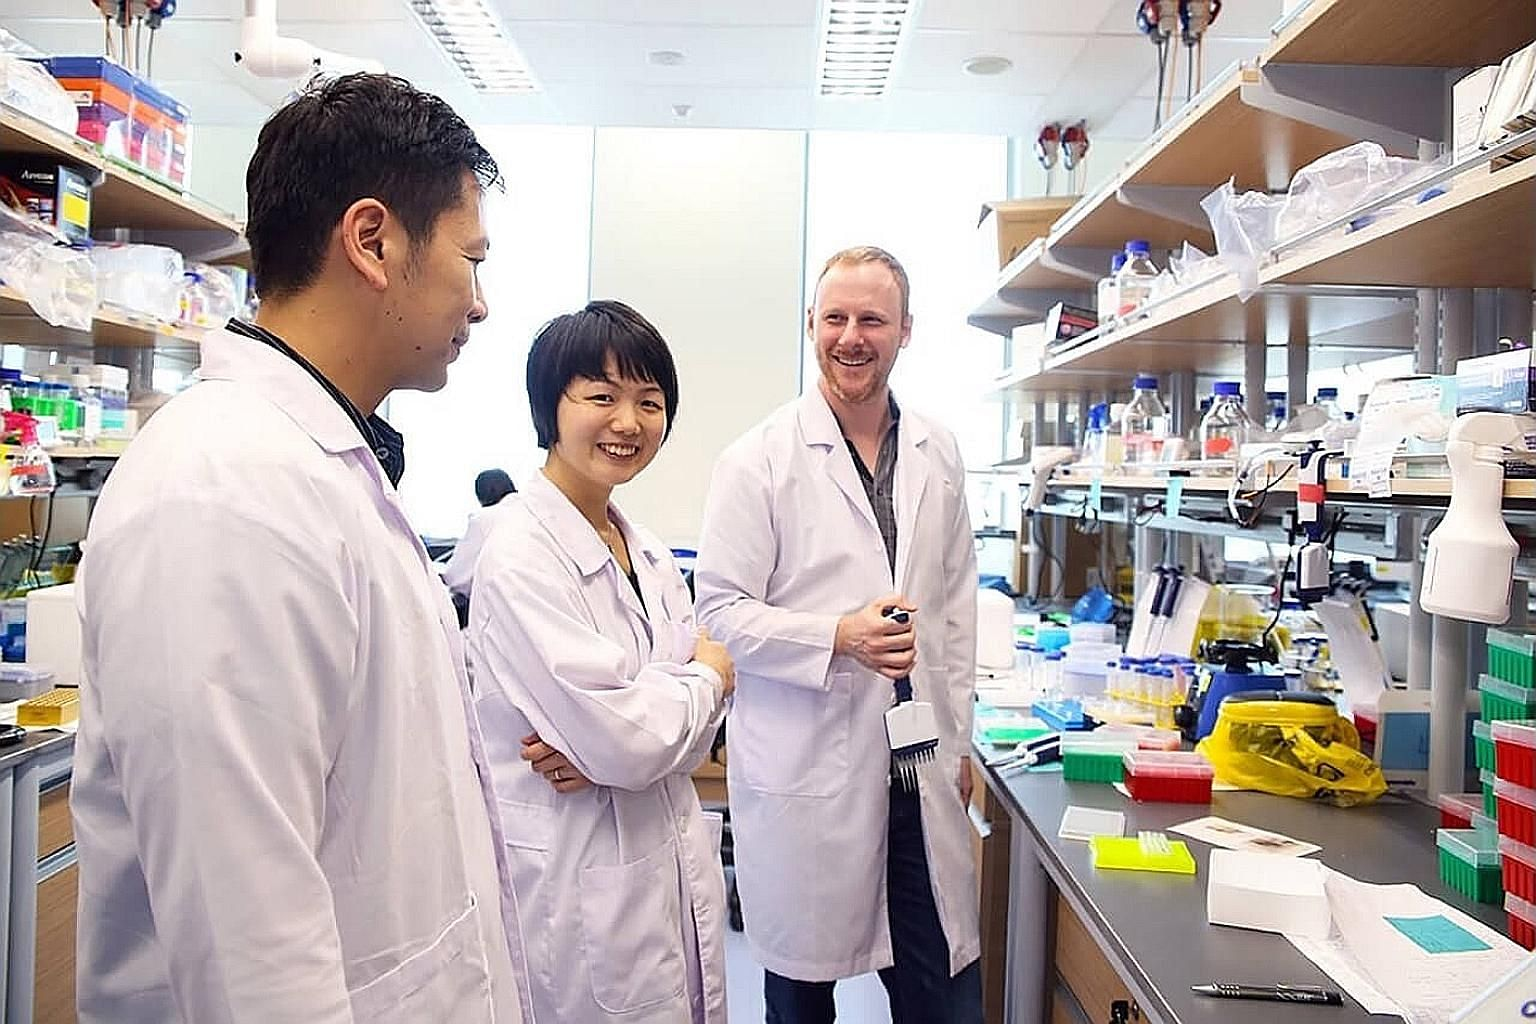 The co-founders of local start-up Proteona - (from left) Dr Shawn Hoon, Dr Wang Yingting and Dr Jonathan Scolnick - having a discussion in their laboratory in Singapore.